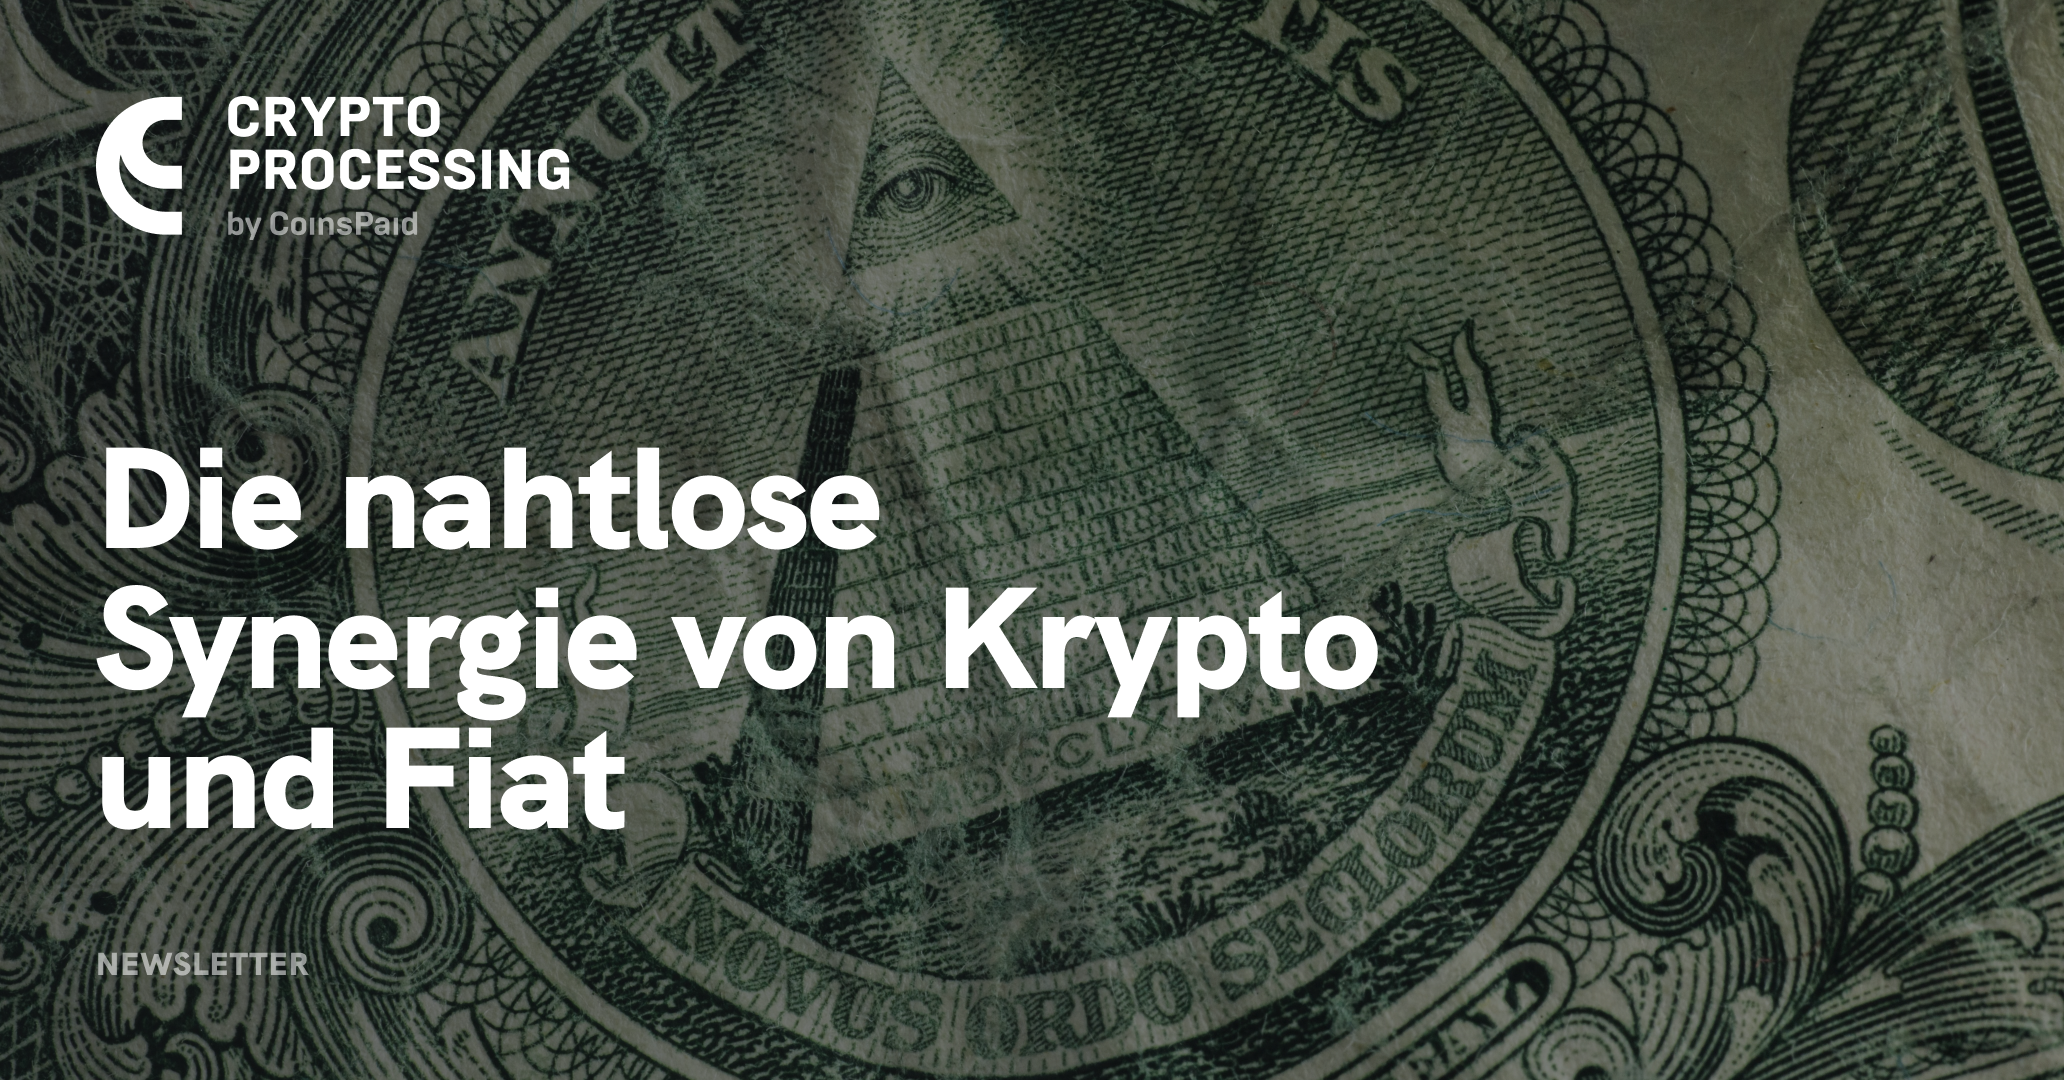 Cryptoprocessing.com: Vorreiter bei der Krypto-Fiat Integration 0001